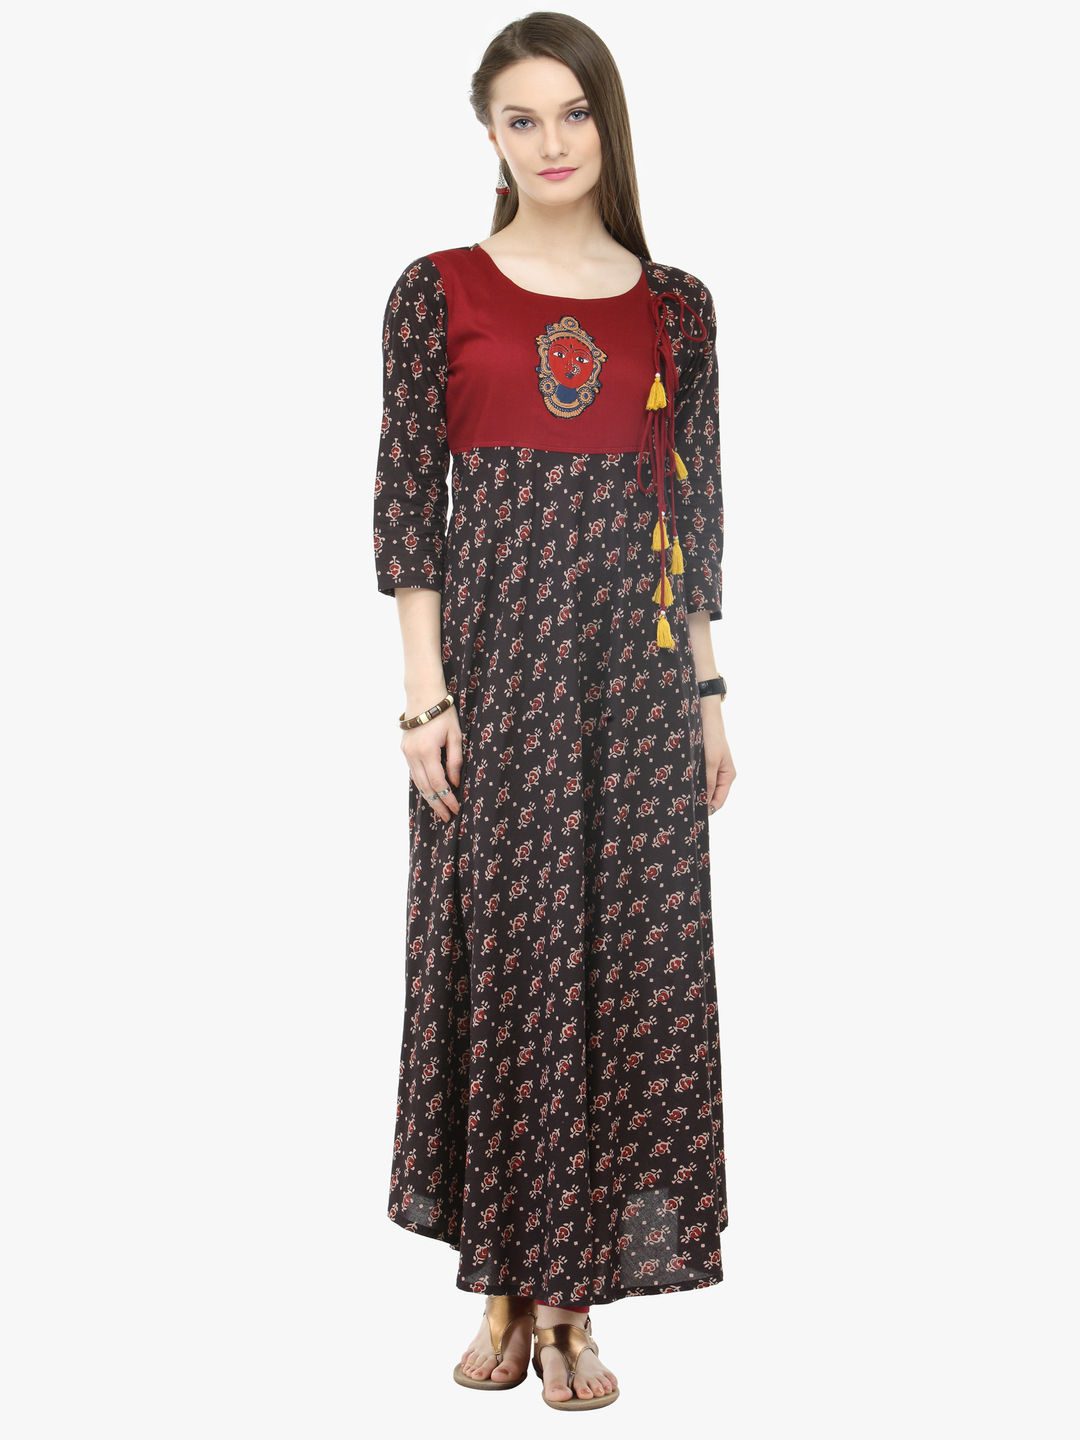 2a2951e8825f Buy Brown Cotton Printed Dresses online at Best Price